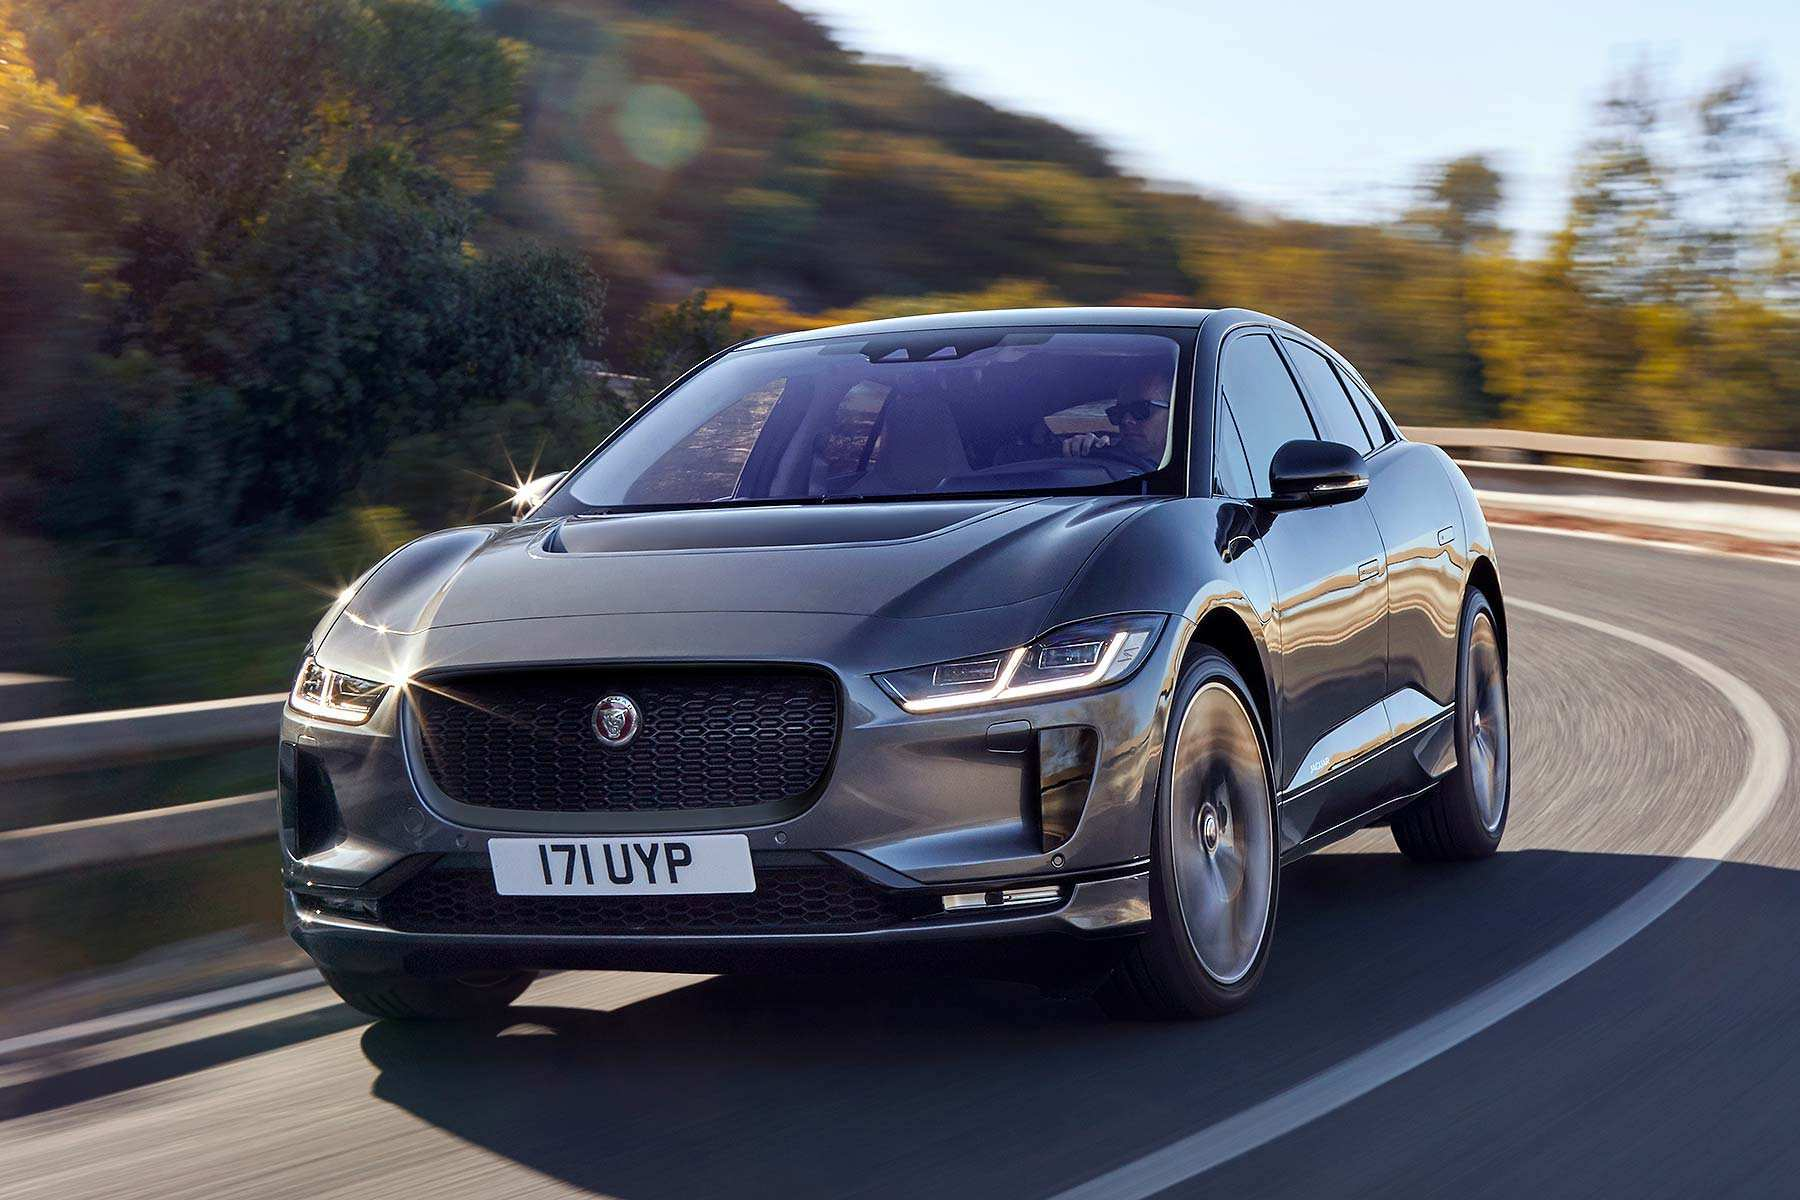 32 Gallery of 2019 Jaguar I Pace Electric Price and Review with 2019 Jaguar I Pace Electric